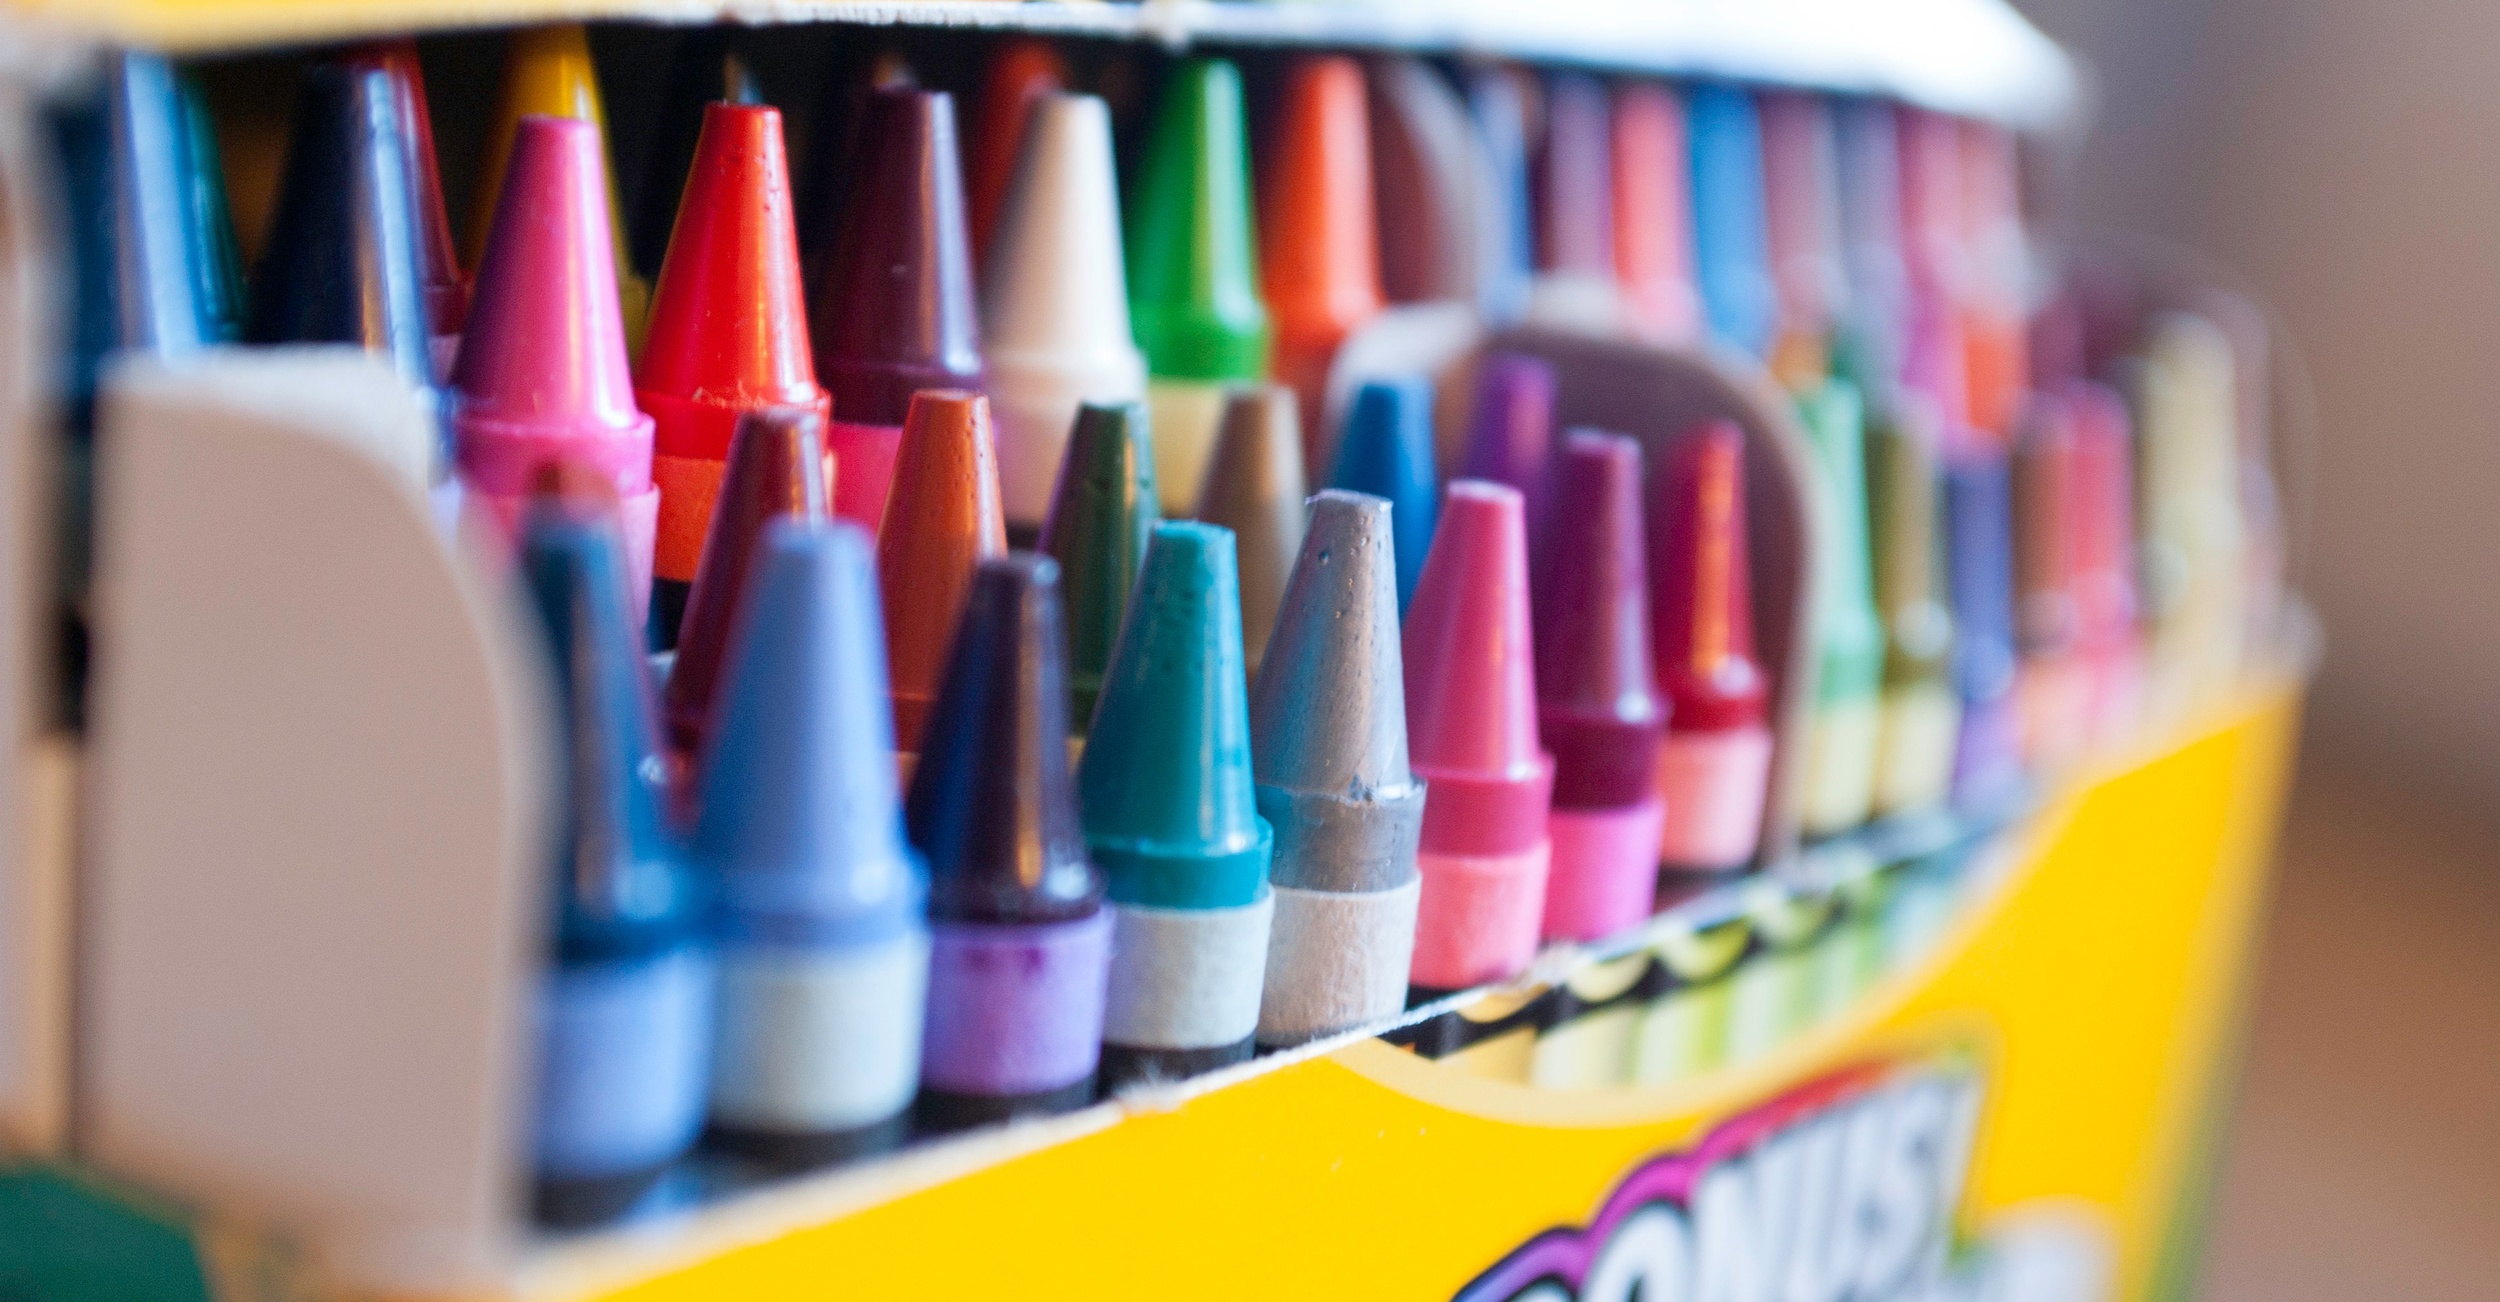 Crayons for the multi-taskers in the room.